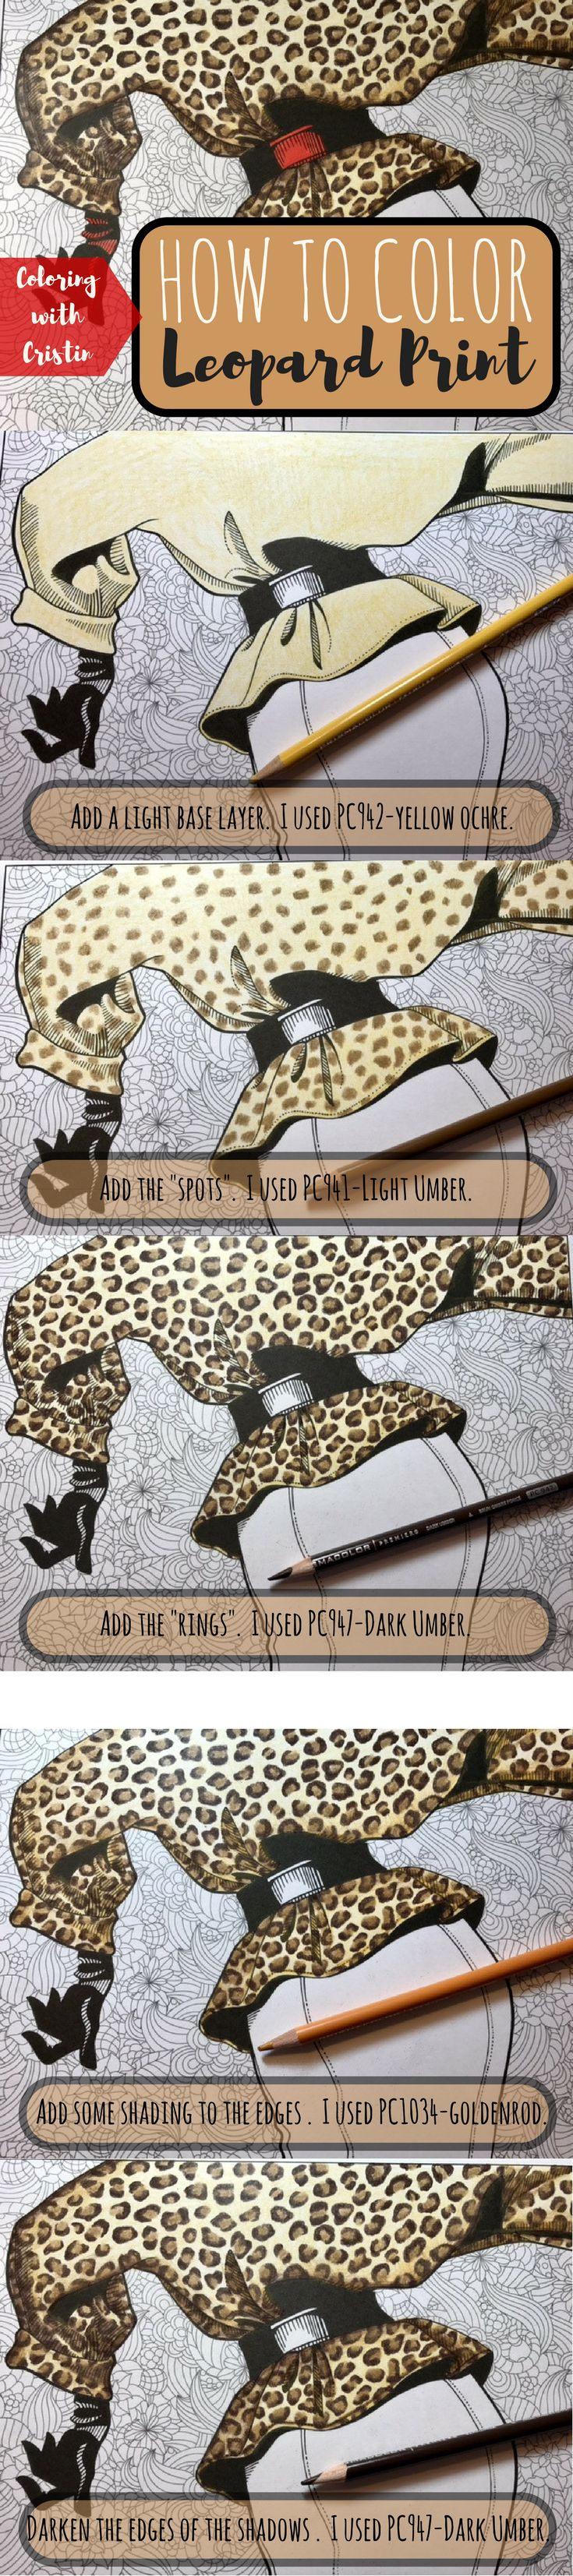 Coloring book for adults for pc - 5 Easy Steps To Color A Kickass Leopard Print Using Colored Pencils Coloring Tutorial Free Coloring Pages Adult Coloring Prismacolor Pencils